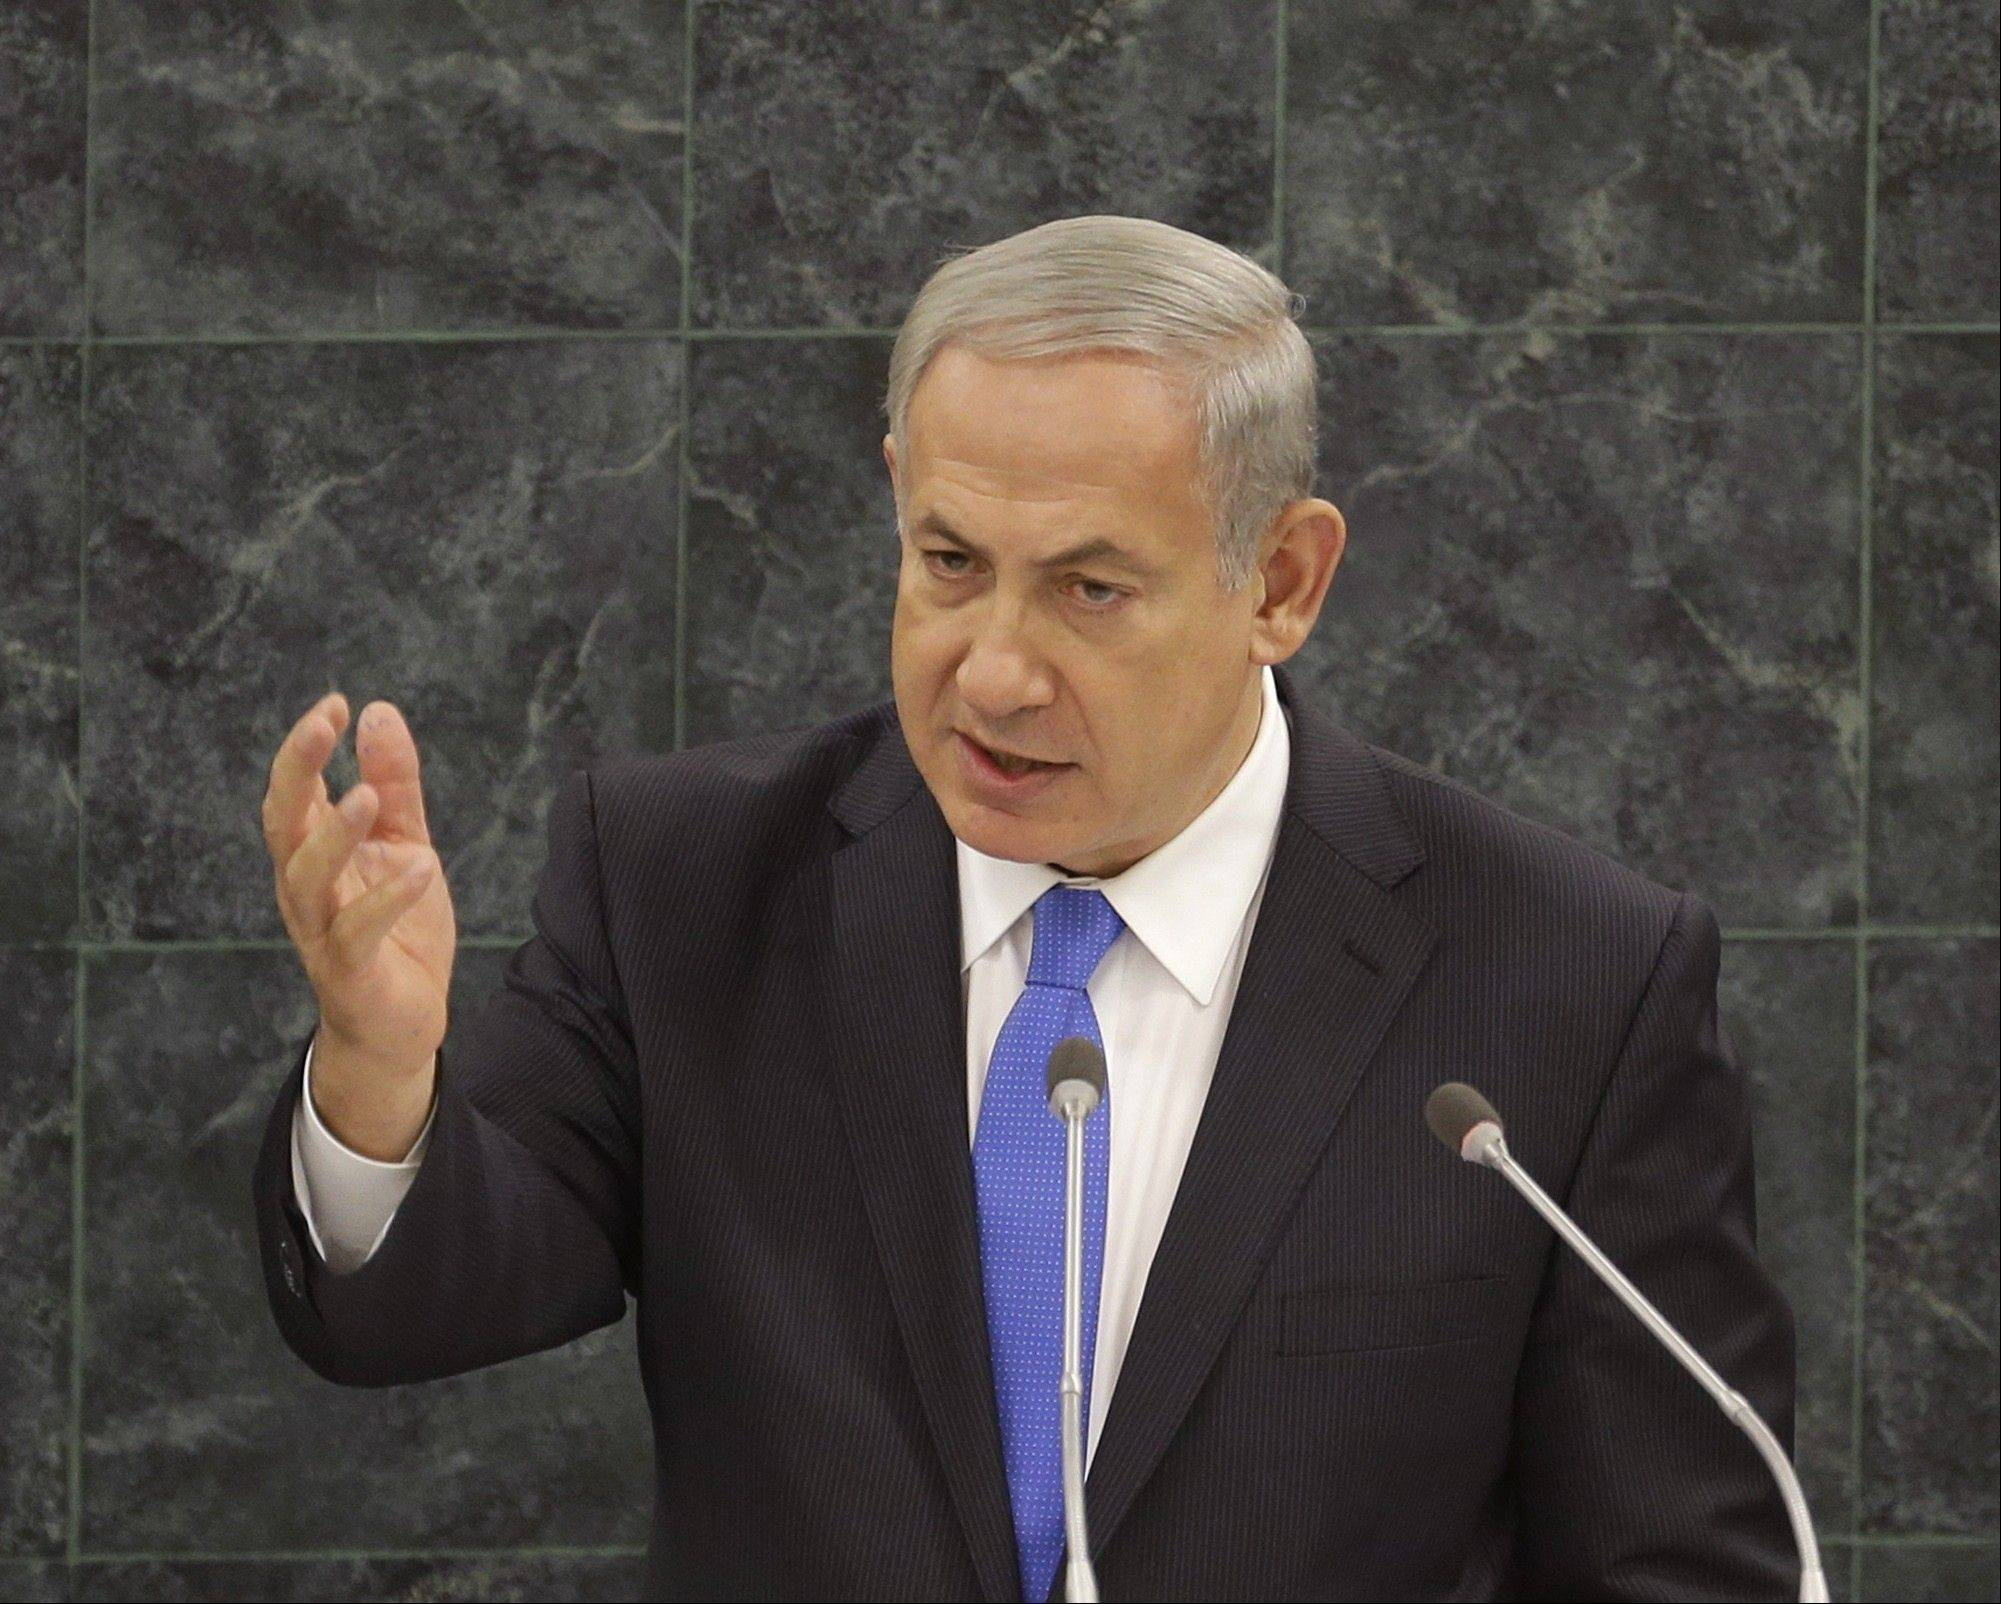 Israeli Prime Minister Benjamin Netanyahu, speaking before the U.N. General Assembly on Tuesday, declared his country will never allow Iran to get nuclear weapons, even if it has to act alone. He dismissed the Iranian president�s �charm offensive� as a ruse to get relief from sanctions.